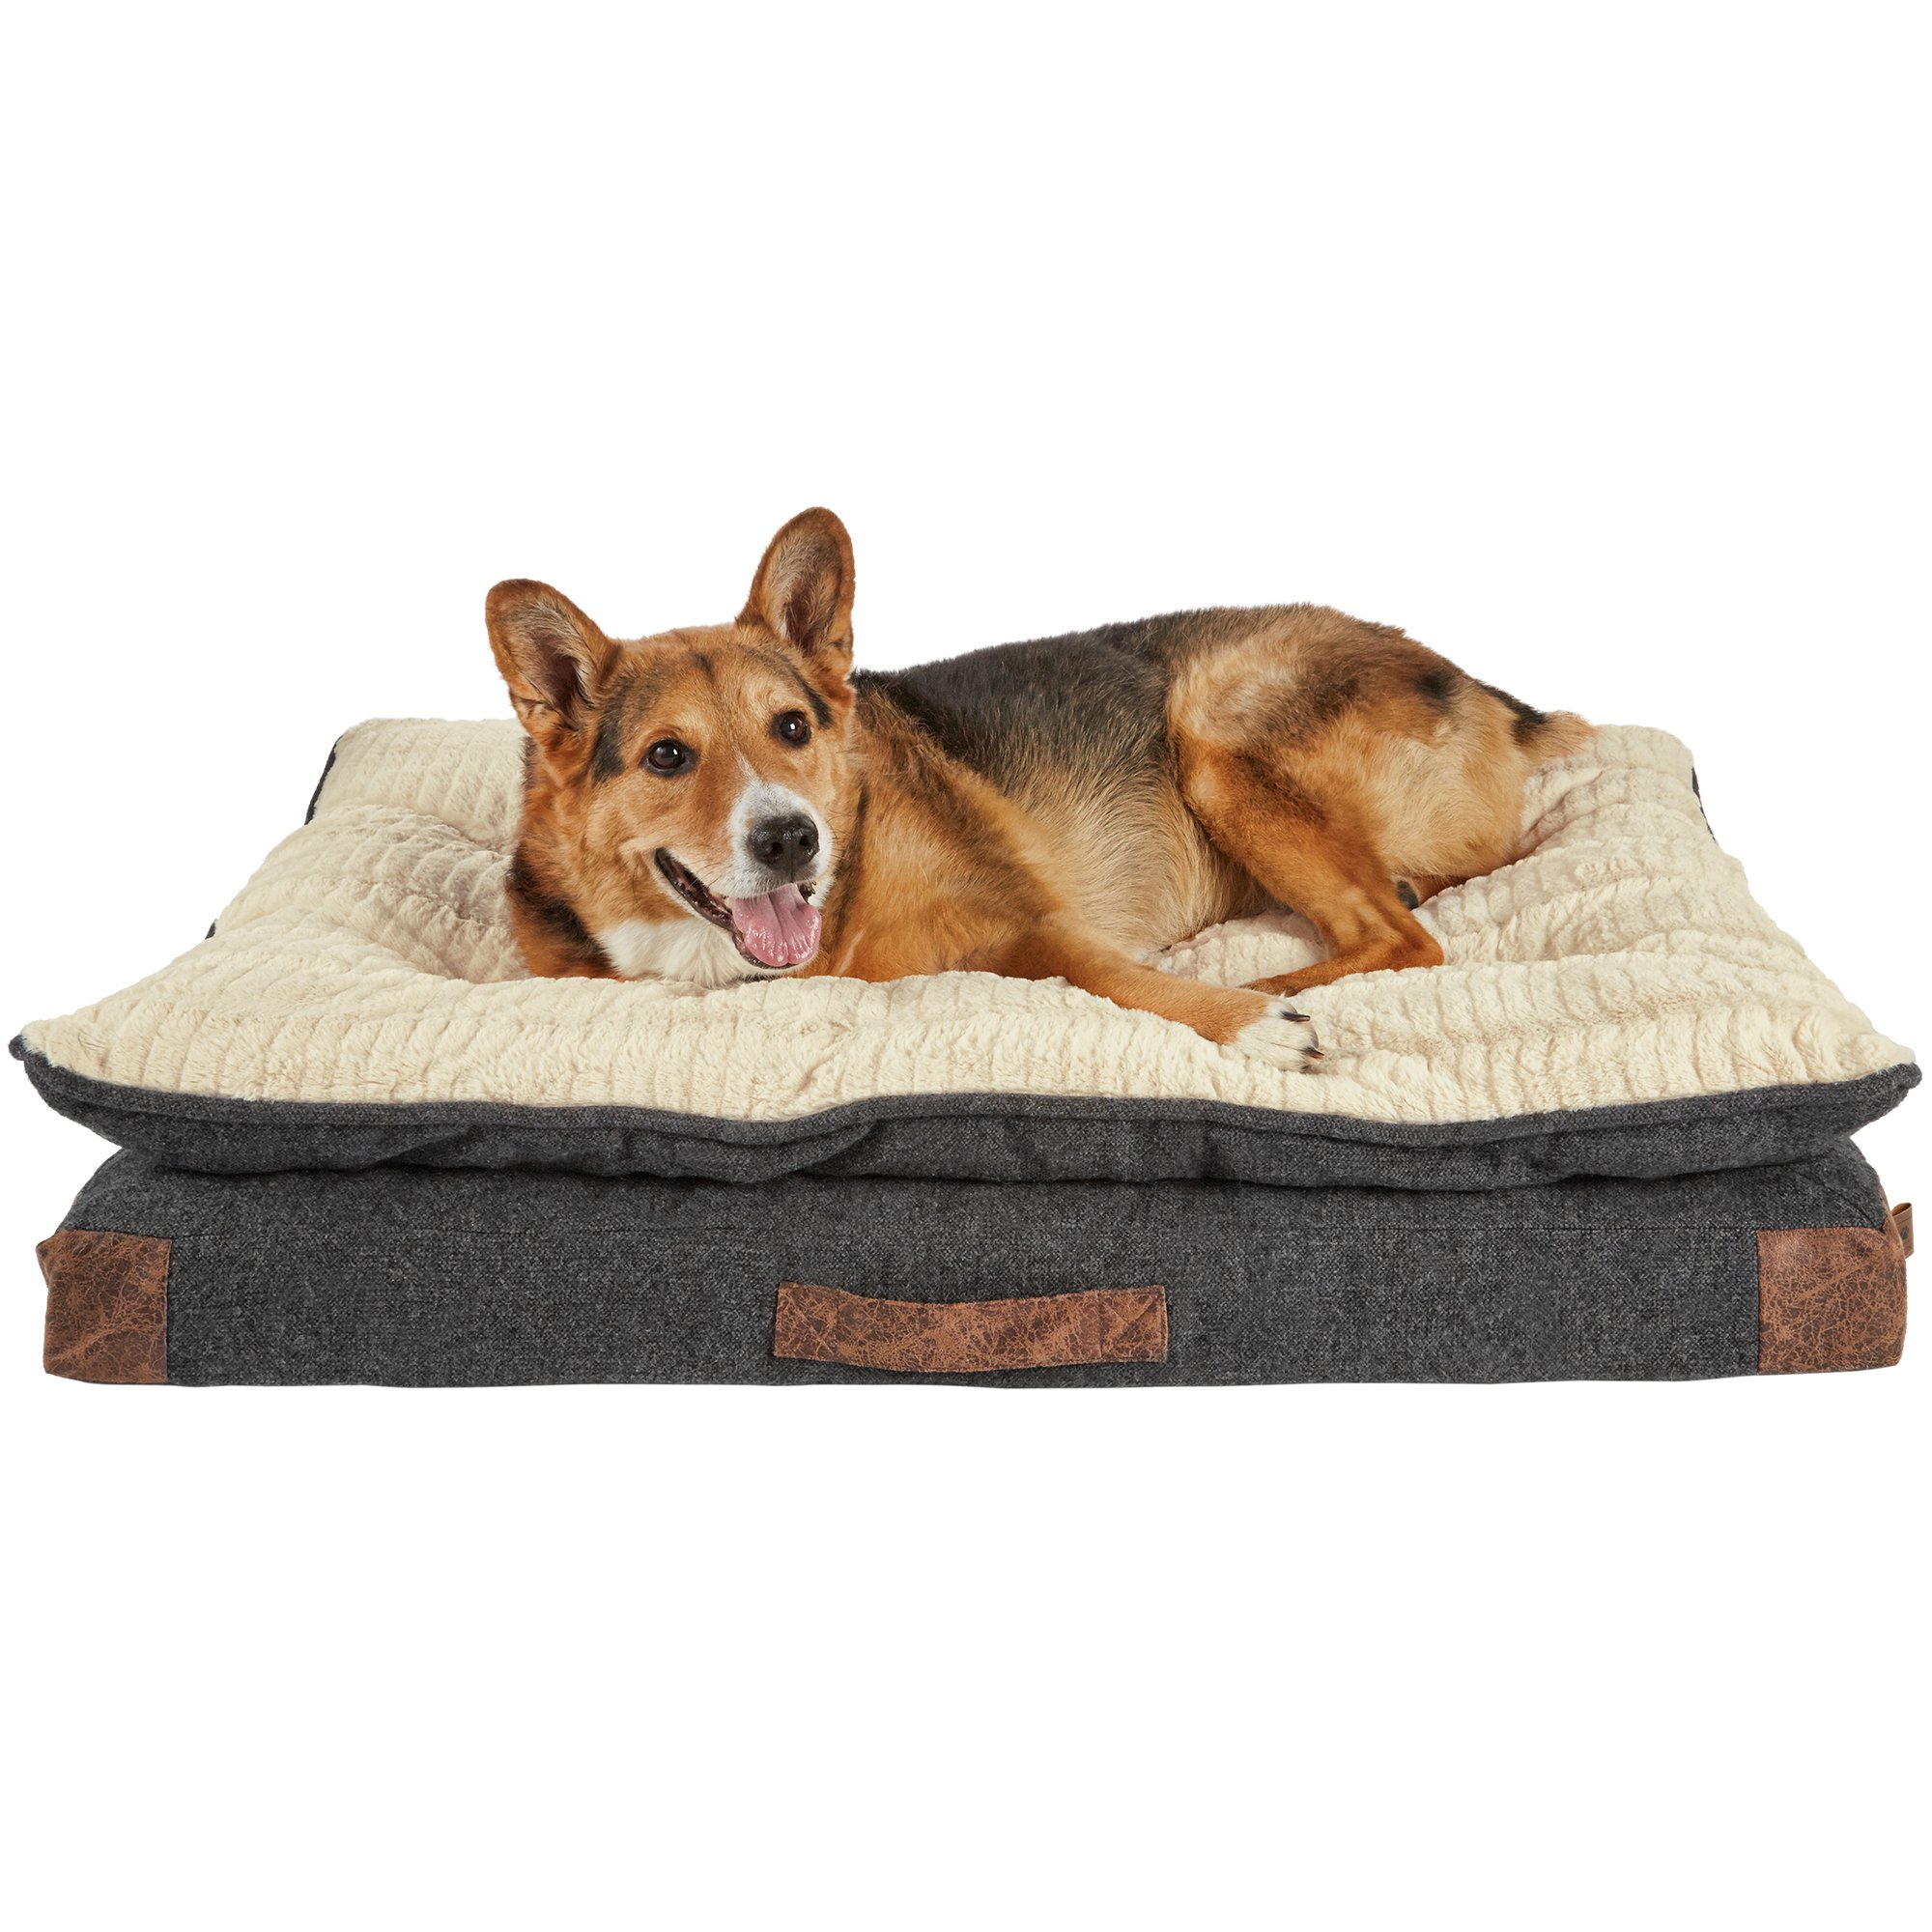 4e8d0b287abd Dog Beds & Bedding: Best Large & Small Dog Beds on Sale | Petco